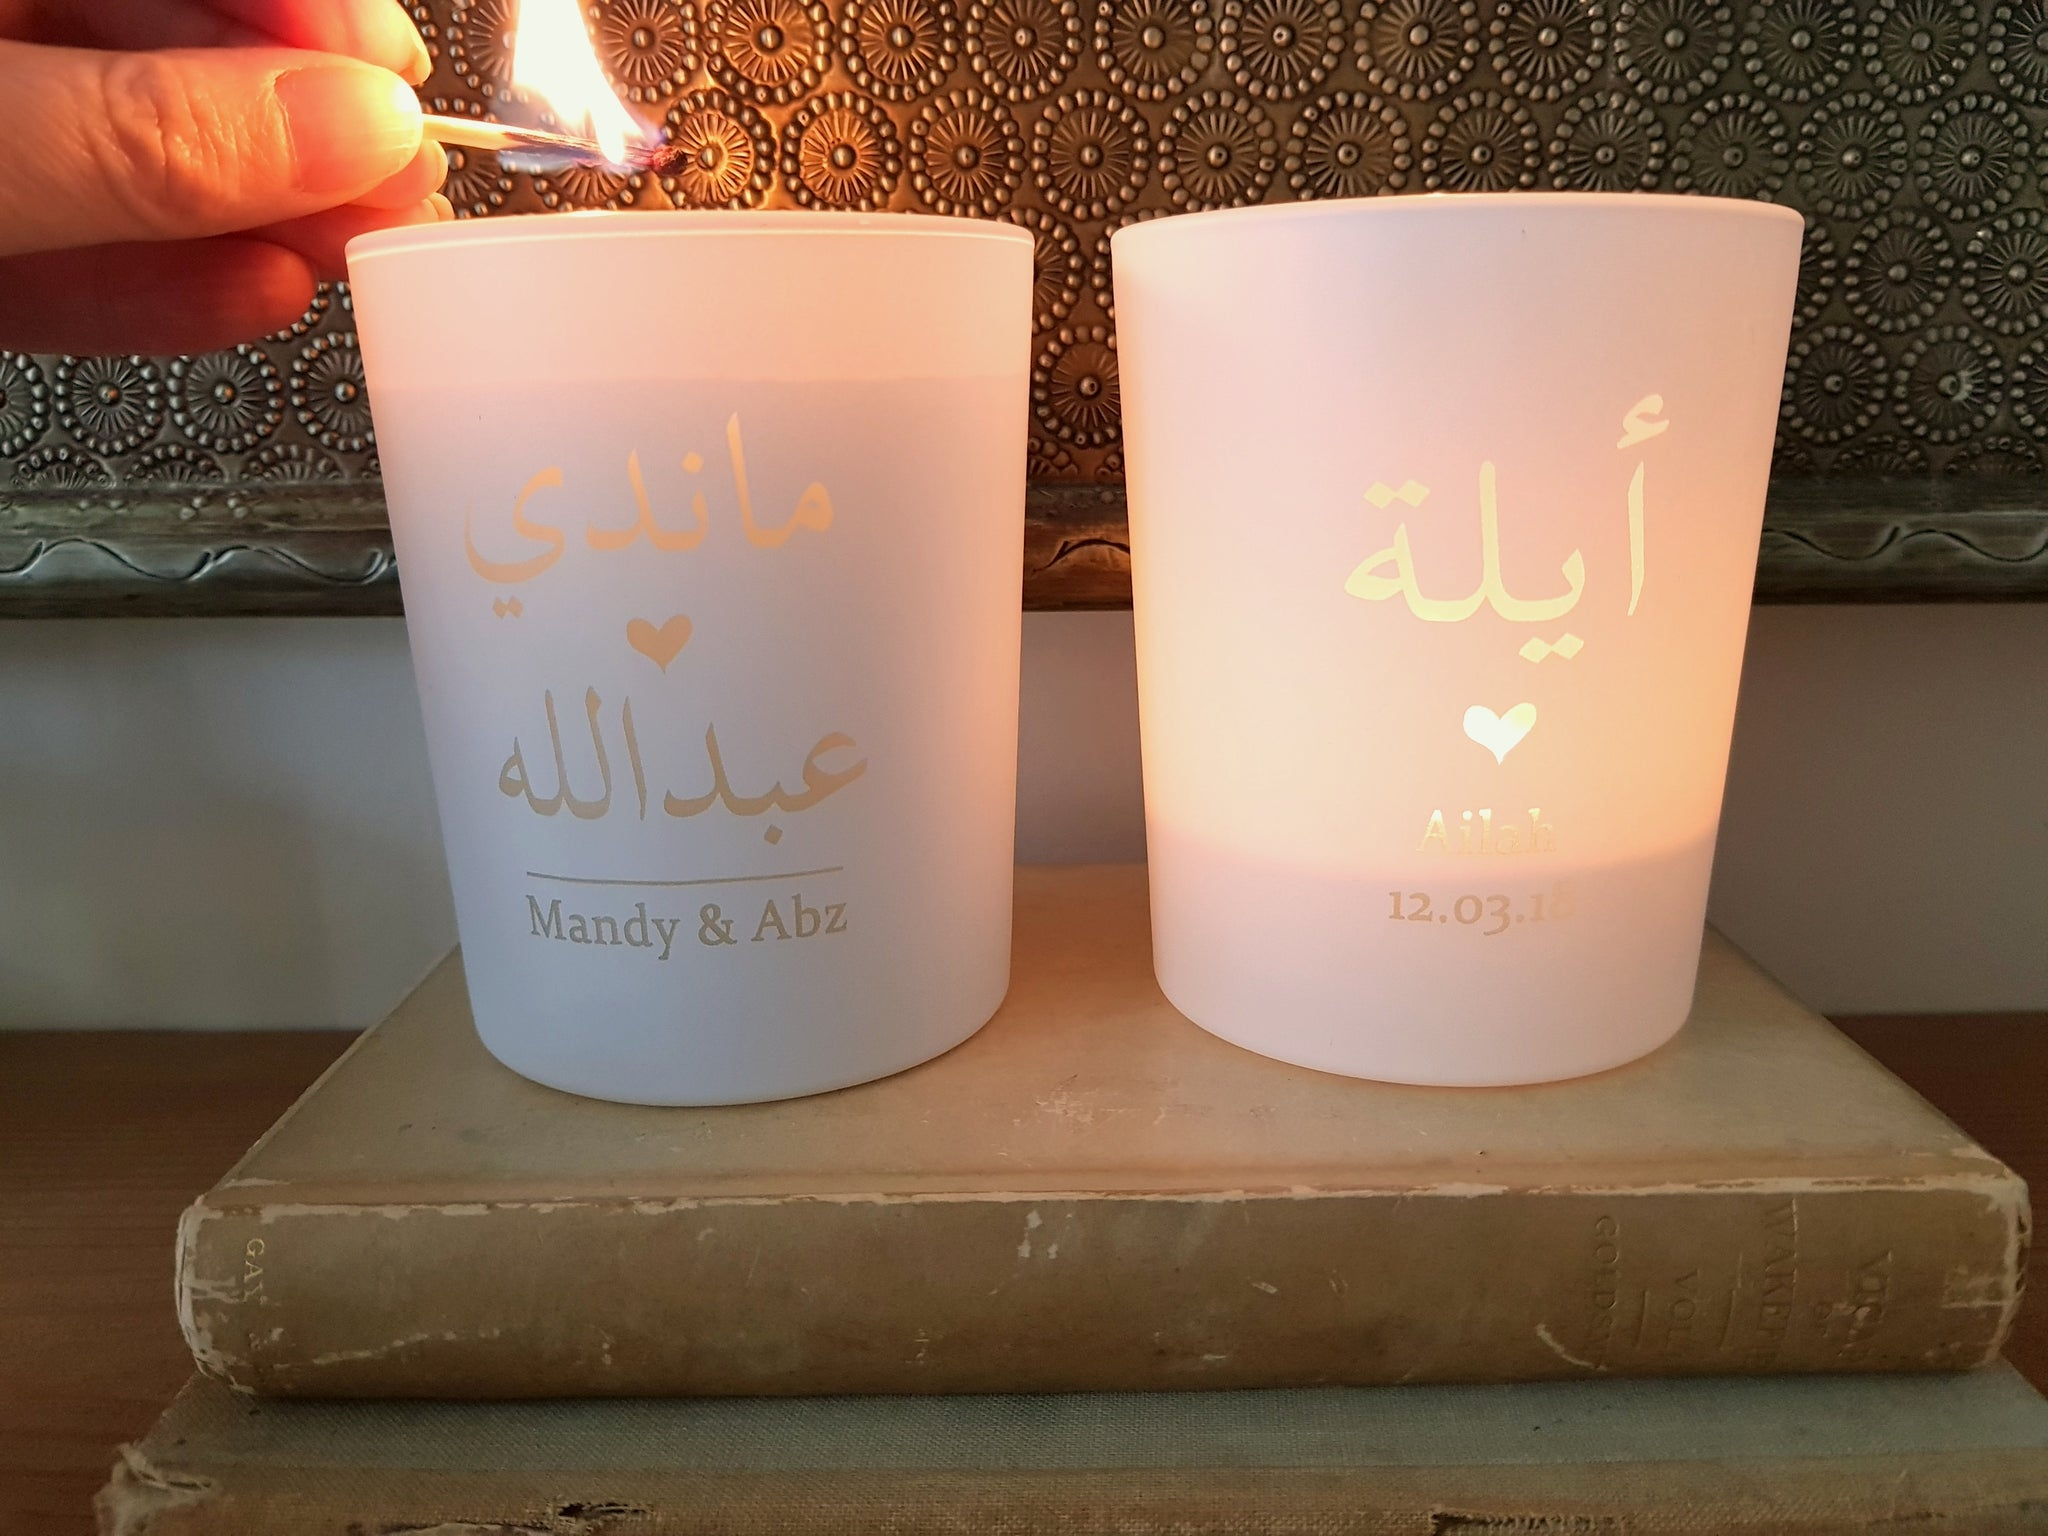 Personalised Arabic and English etched glass scented candle holder by Qalbi